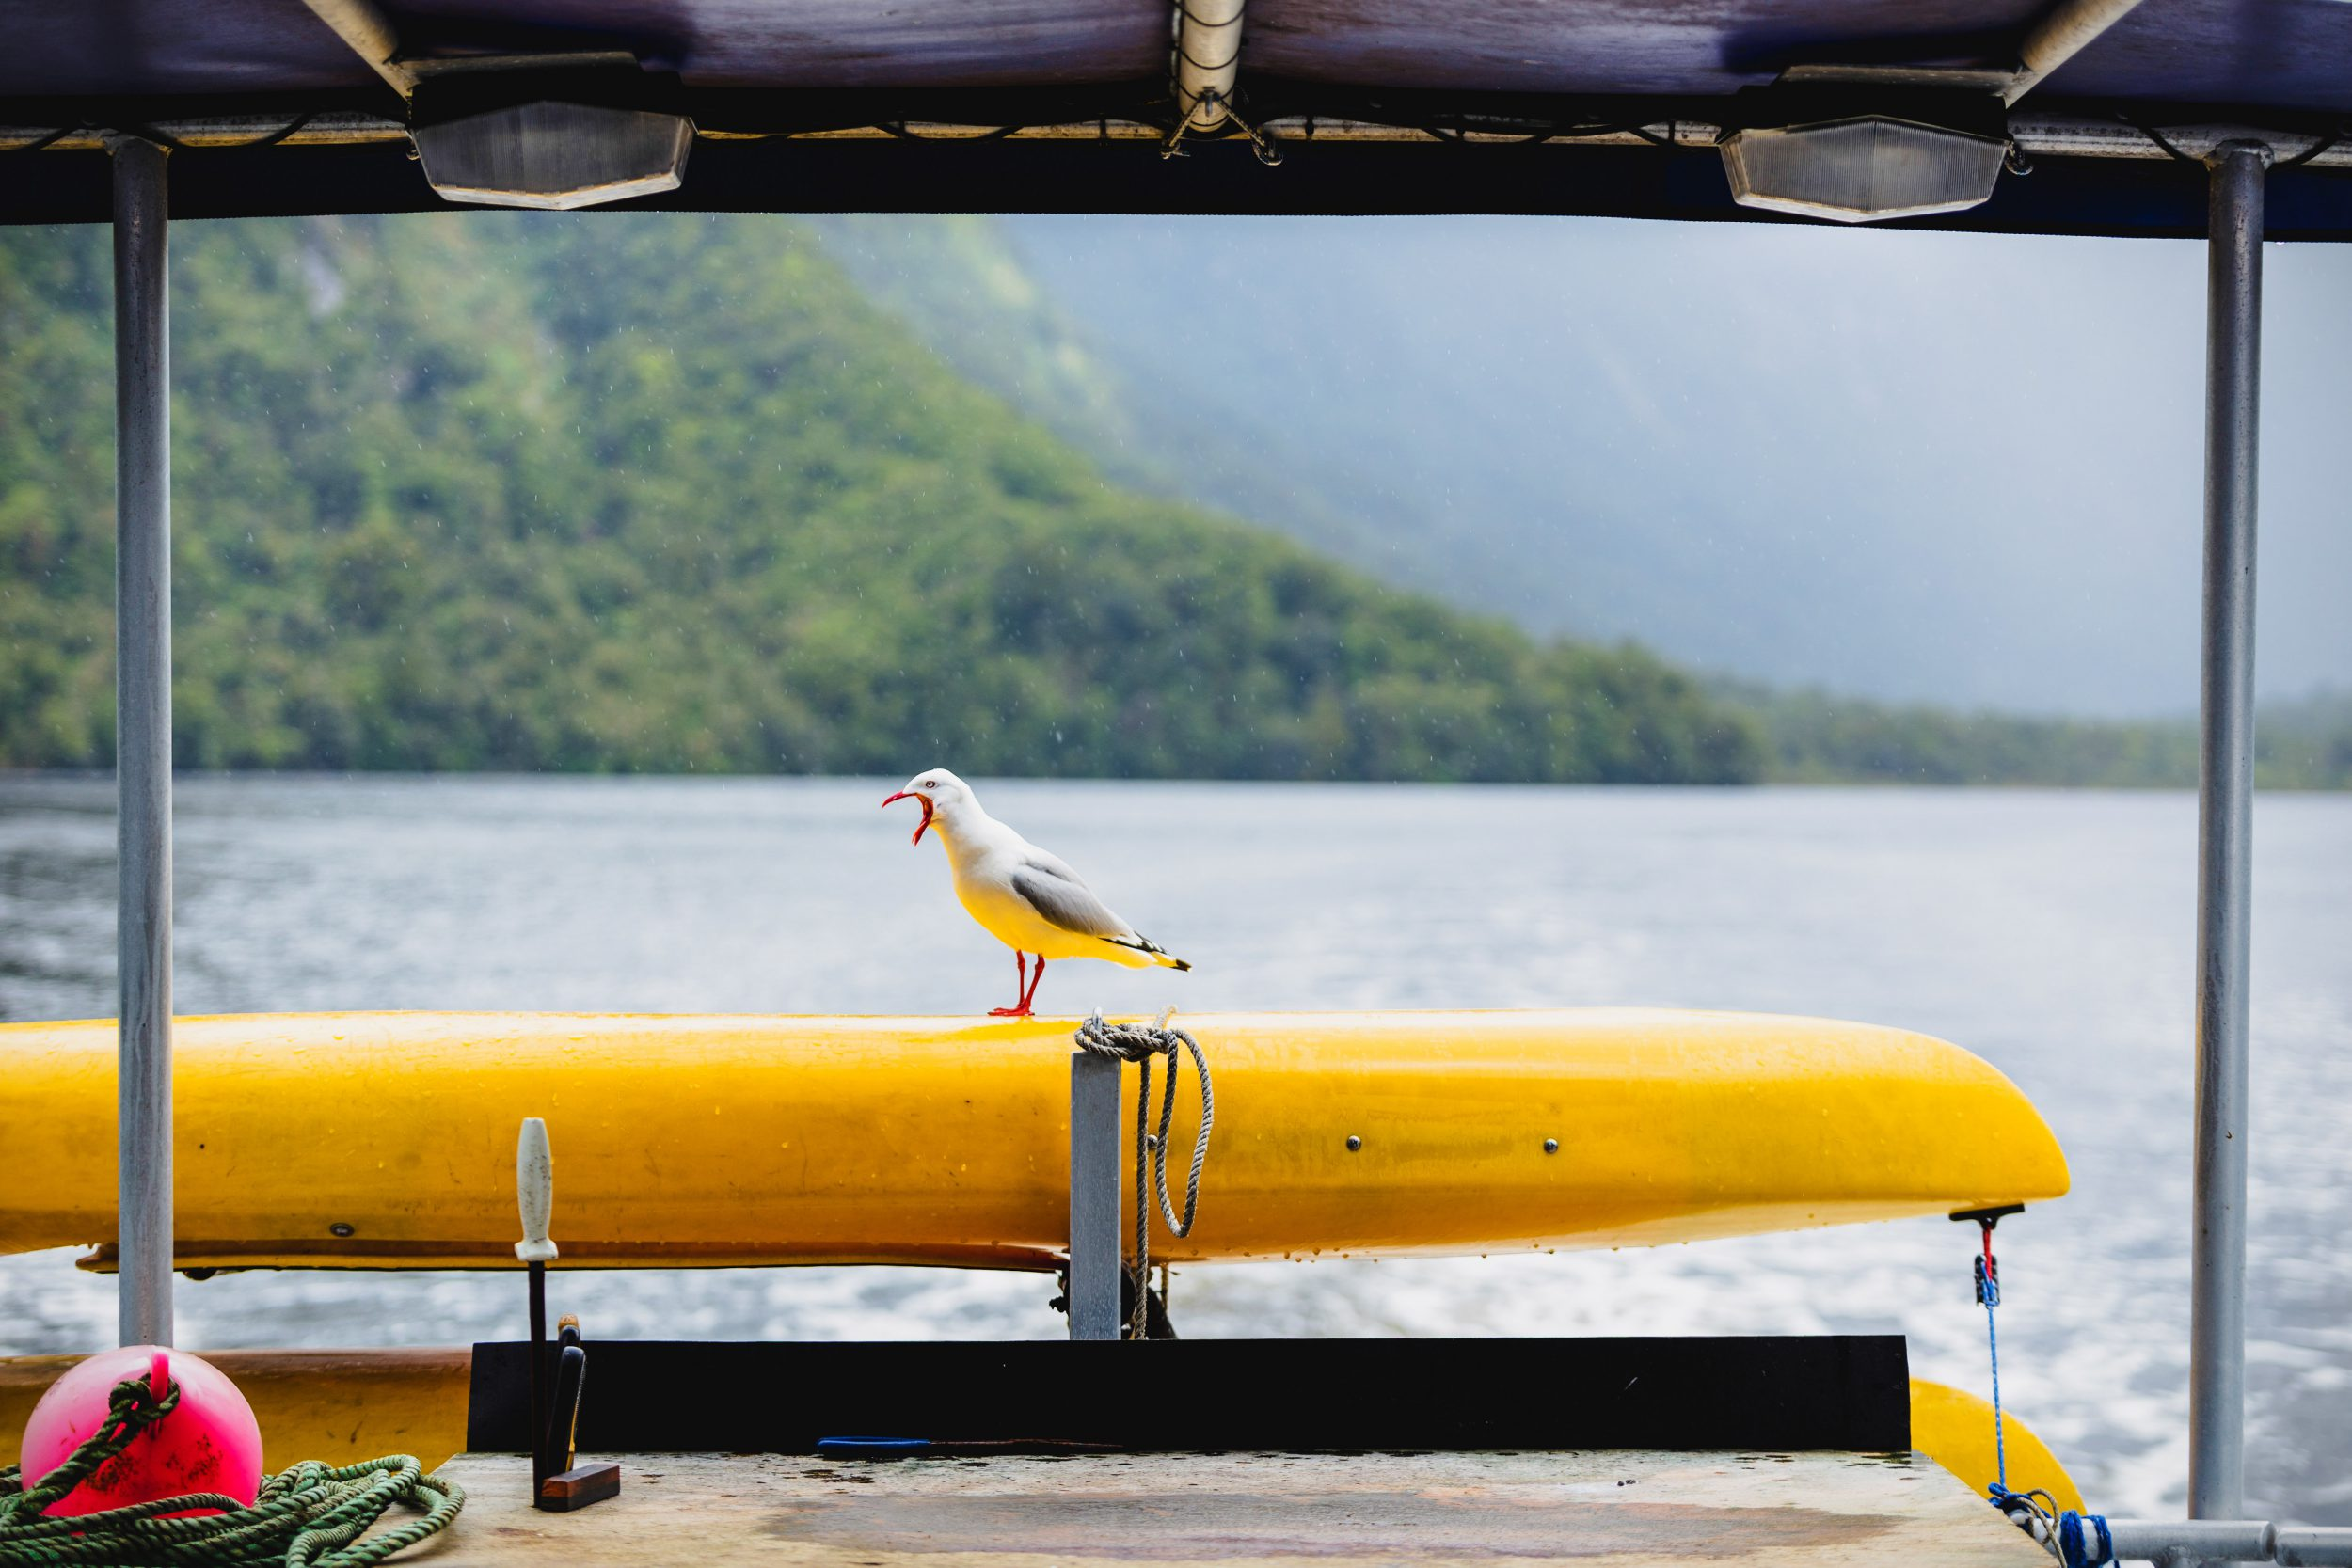 A seagull catches a ride on a cruise through New Zealand's Doubtful Sound